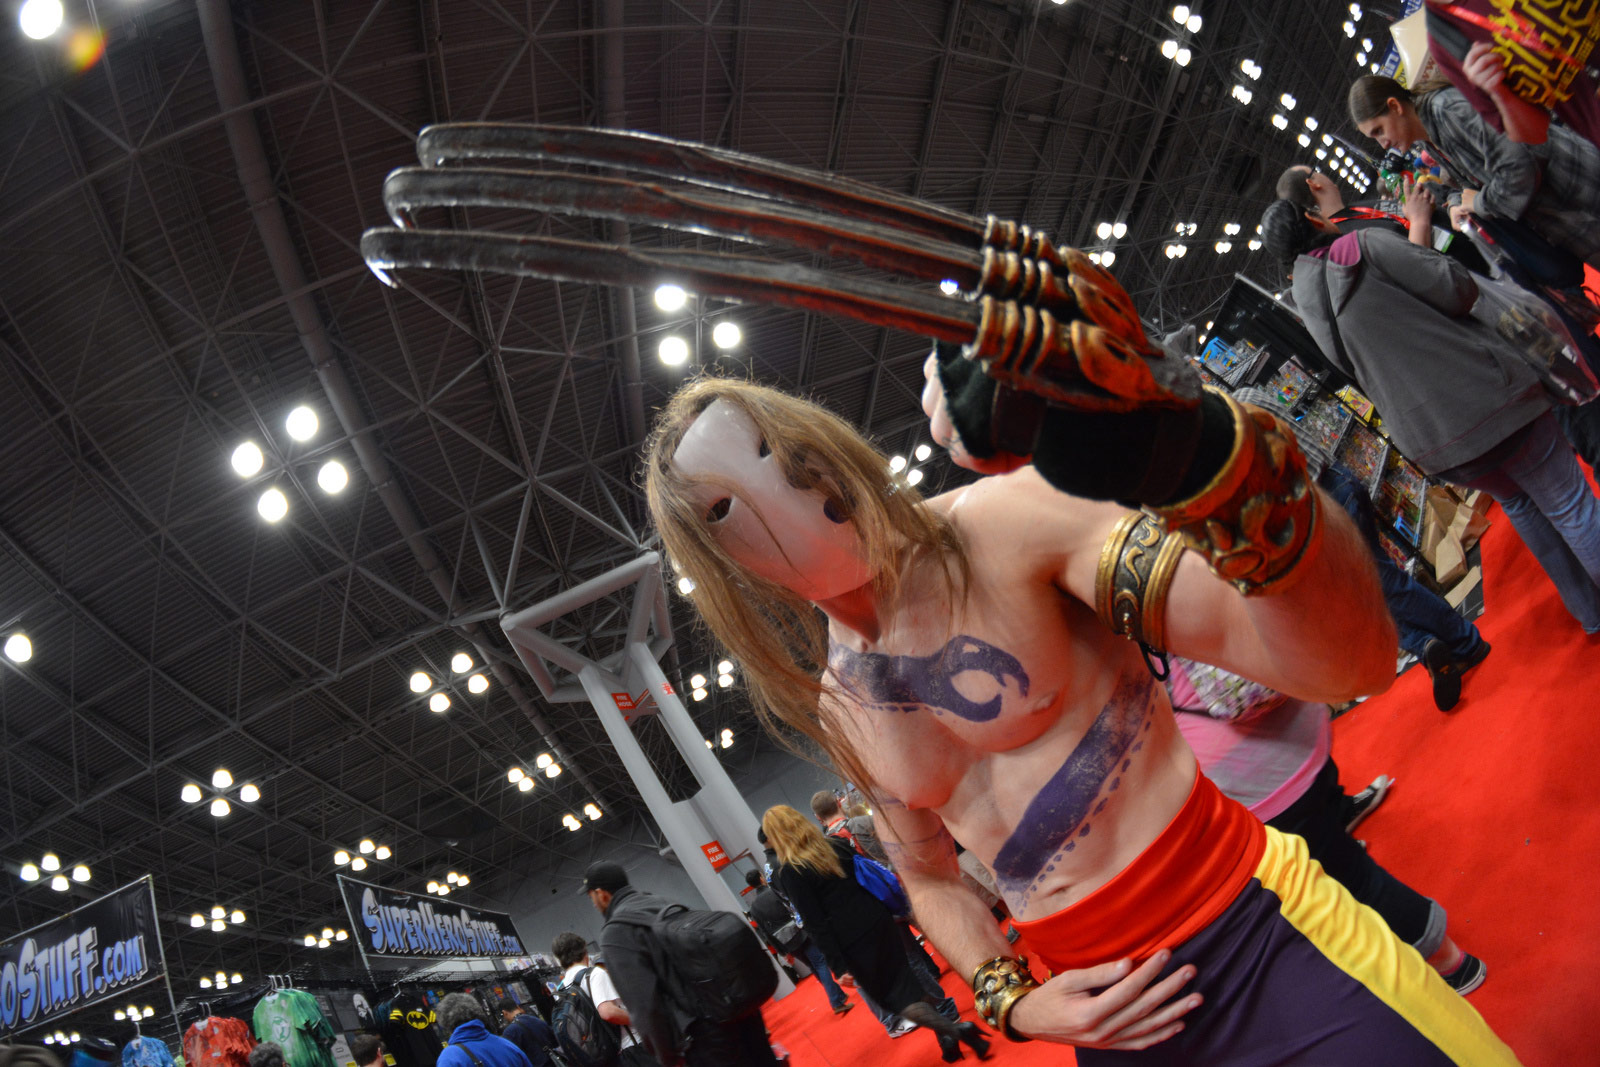 Cosplay photo from the 2013 New York Comic-Con by Jason24cf #4